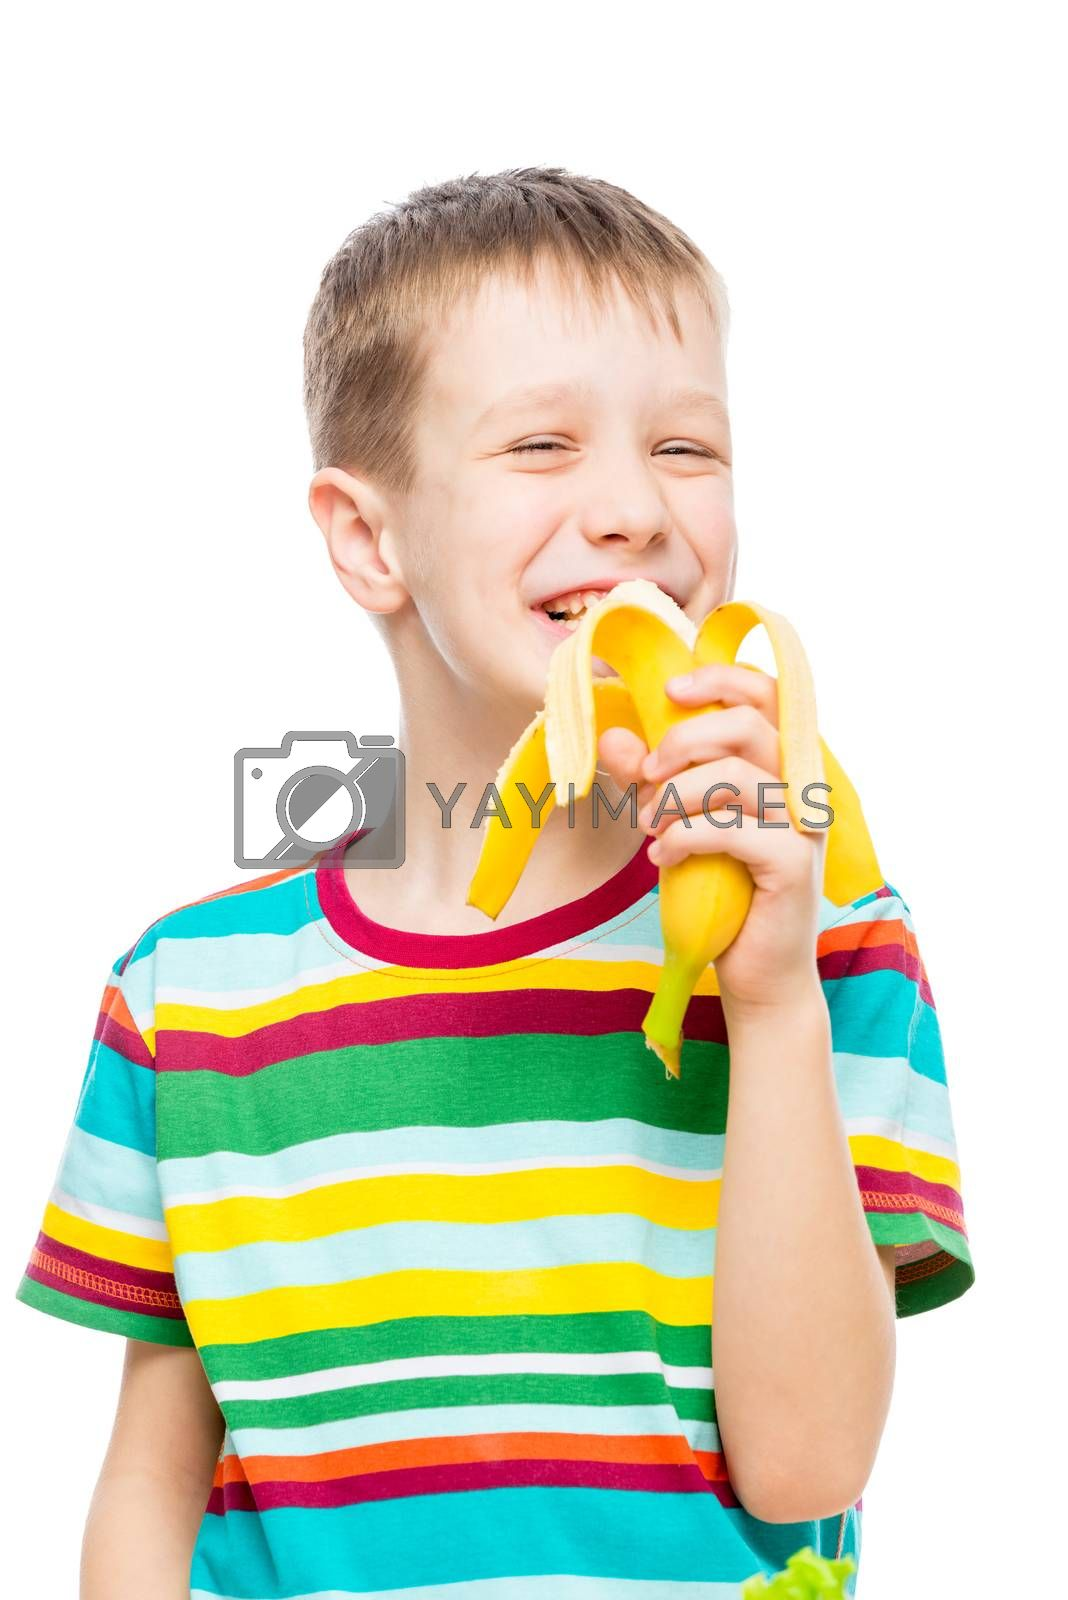 vertical portrait of a boy who eats a tasty banana on a white background, portrait is isolated